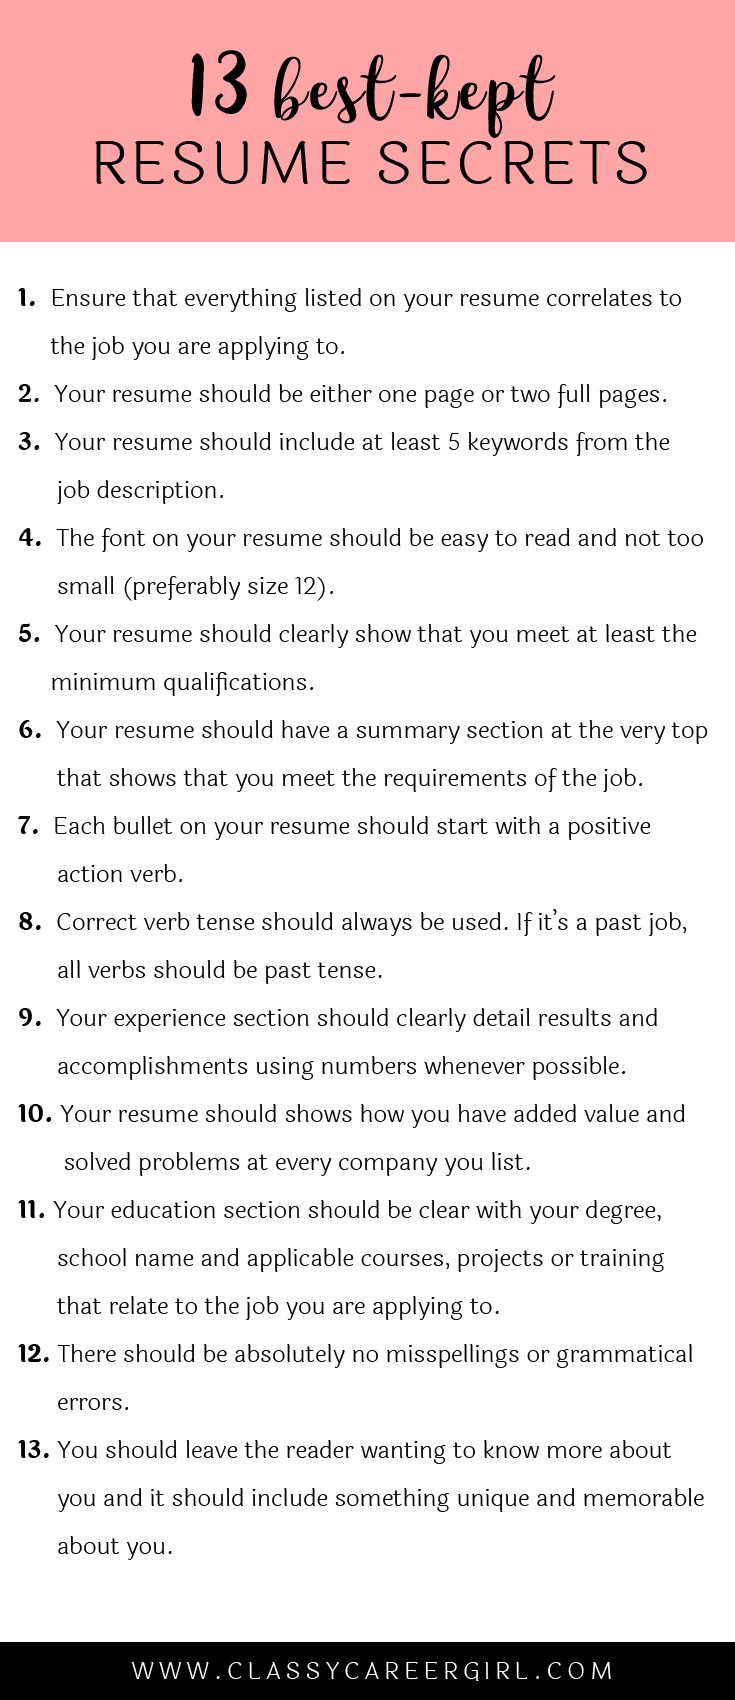 Opposenewapstandardsus  Remarkable  Ideas About Resume On Pinterest  Cv Format Resume Cv And  With Remarkable Some Hiring Managers Will Toss Your Resume Out If You Dont Know These  With Amazing Great Resume Objective Statements Examples Also New Grad Resume In Addition Sample Software Engineer Resume And Federal Government Resume Template As Well As Active Words For Resume Additionally Resume Template Download Free From Pinterestcom With Opposenewapstandardsus  Remarkable  Ideas About Resume On Pinterest  Cv Format Resume Cv And  With Amazing Some Hiring Managers Will Toss Your Resume Out If You Dont Know These  And Remarkable Great Resume Objective Statements Examples Also New Grad Resume In Addition Sample Software Engineer Resume From Pinterestcom